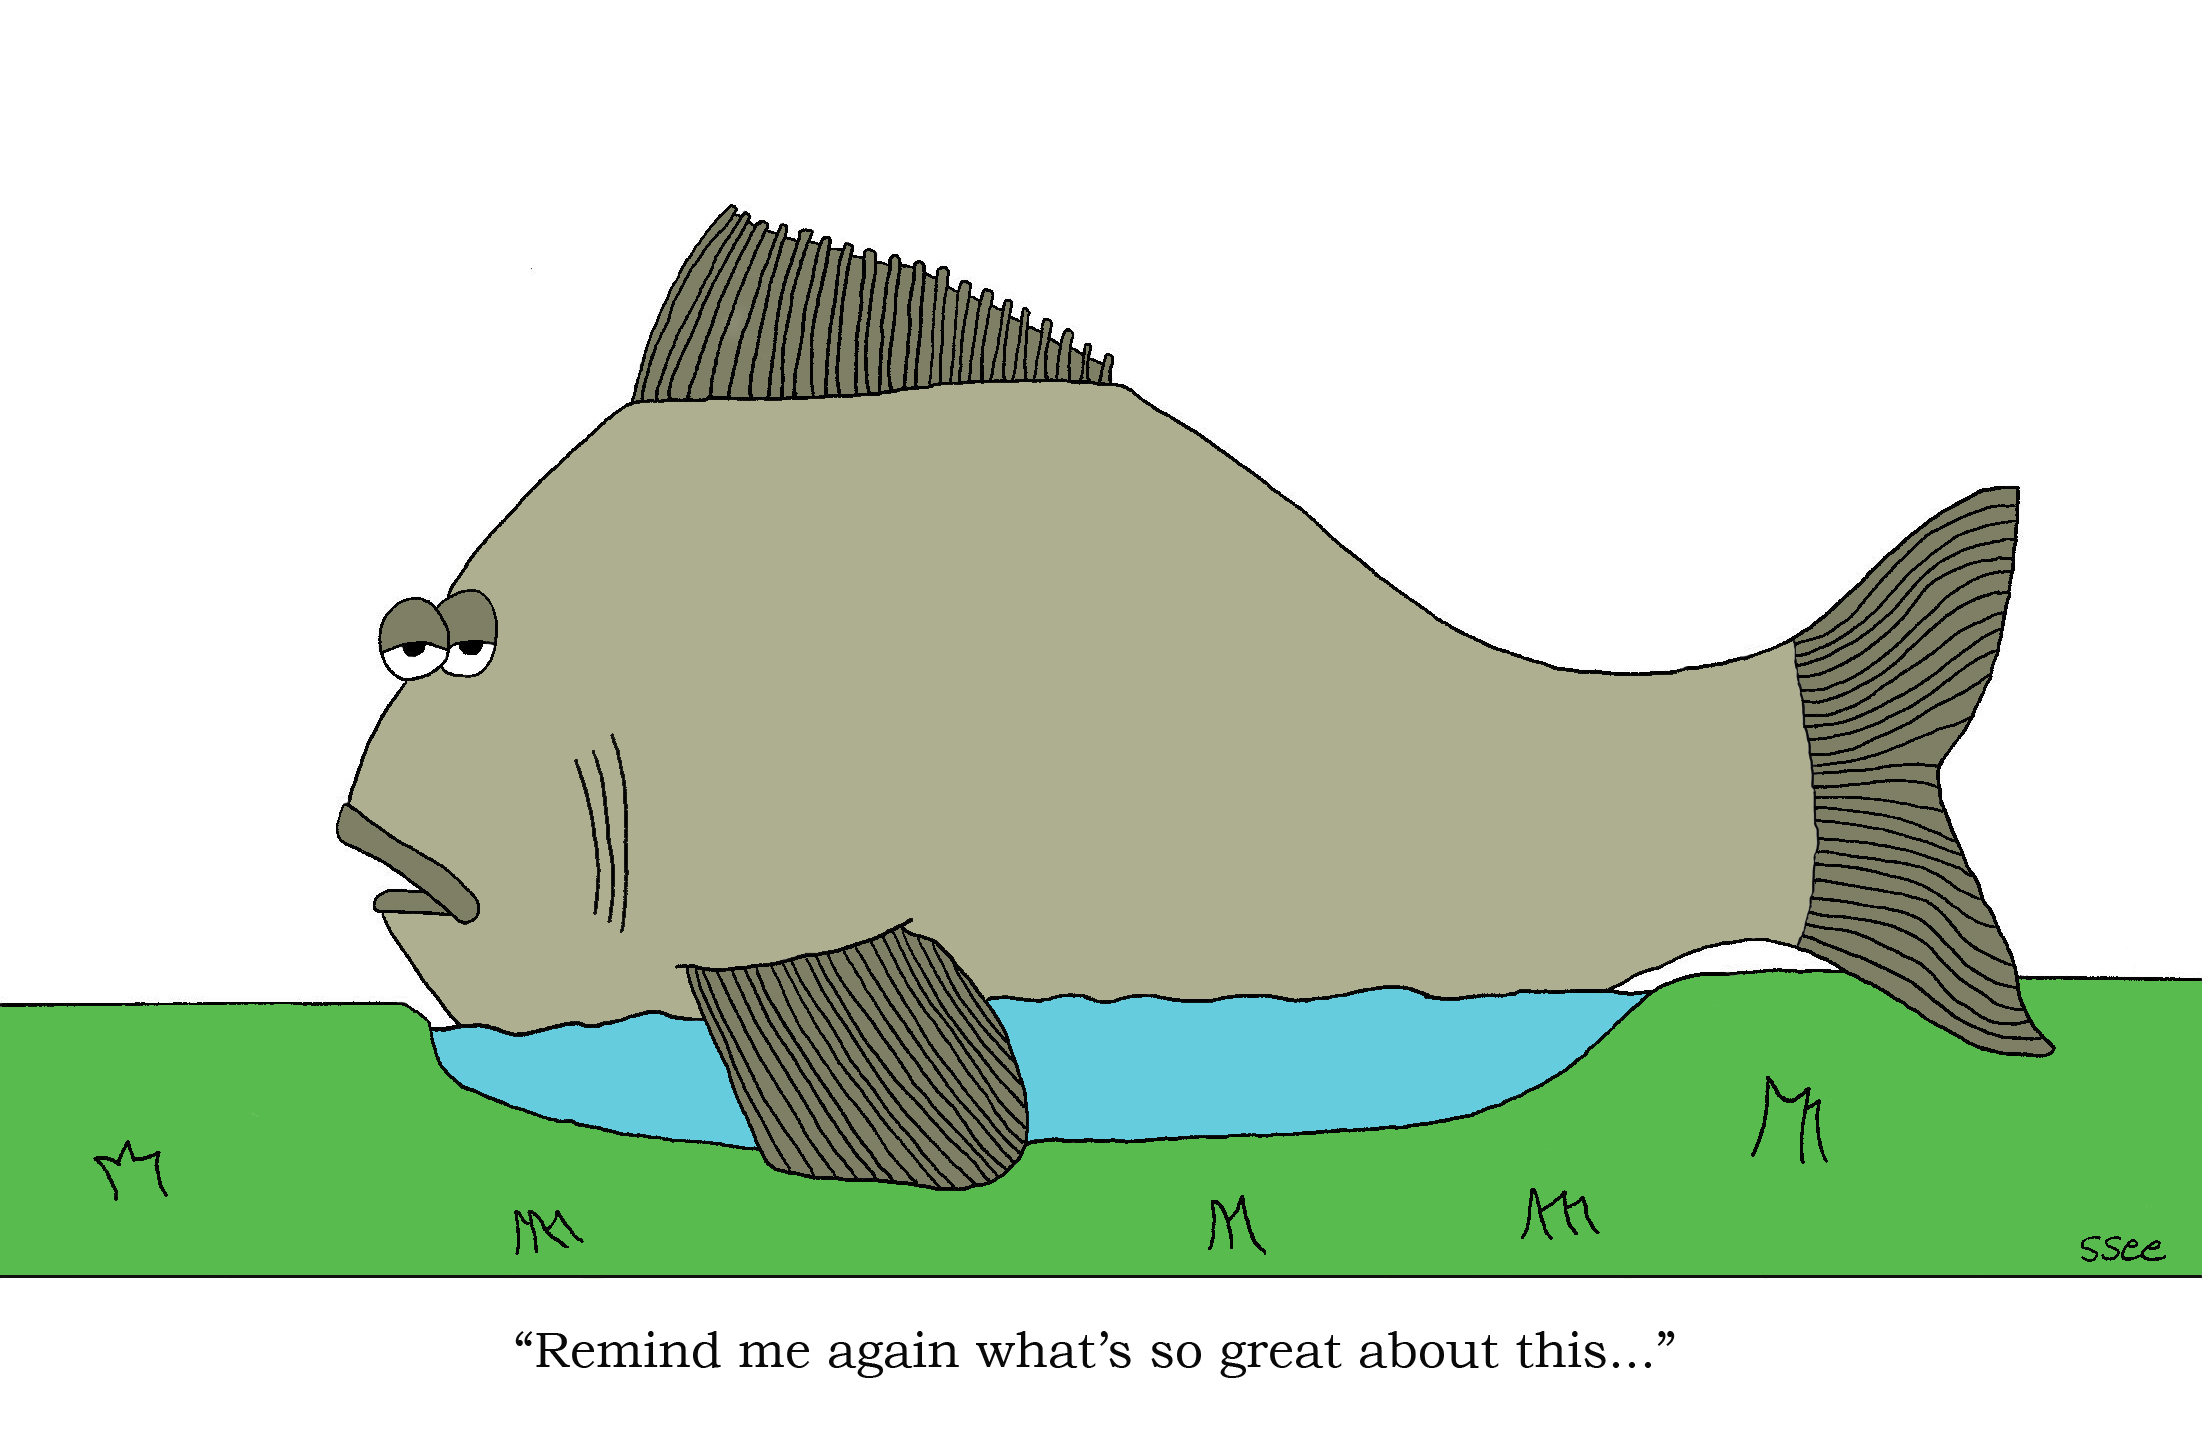 Is it better to be a big fish in a small pond?